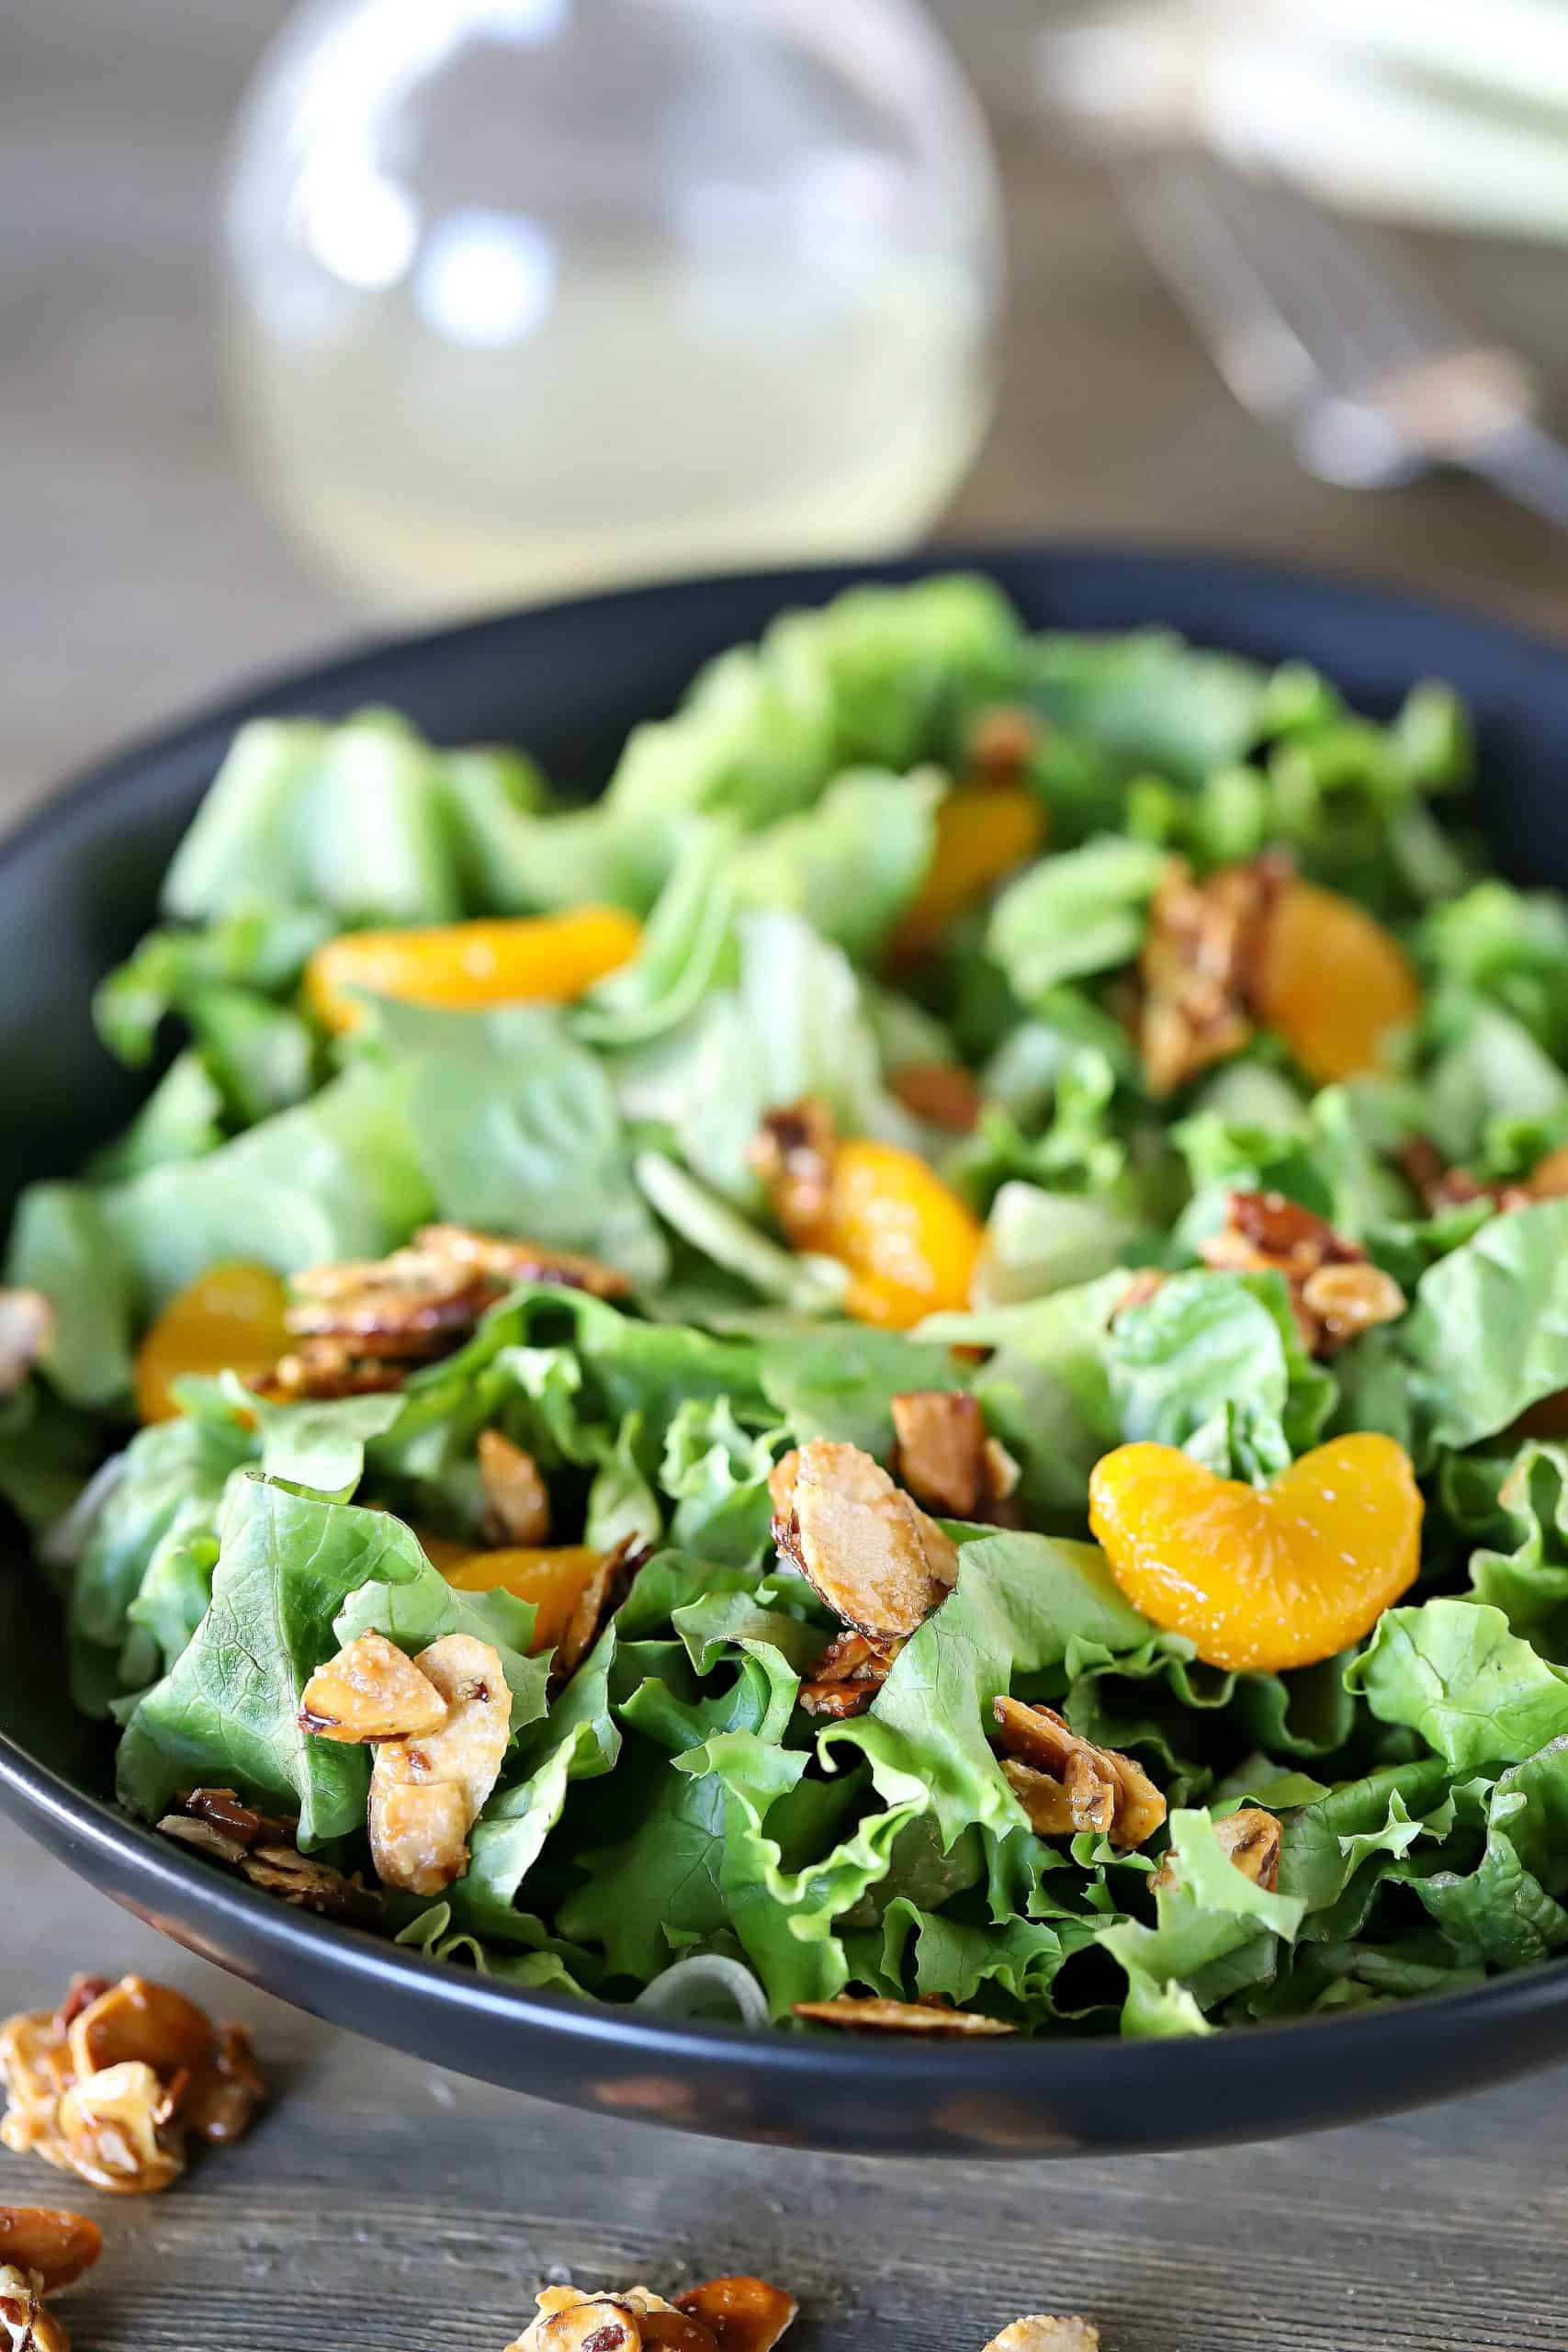 Bowl filled with lettuce mix, and topped with mandarin oranges and toasted almonds.